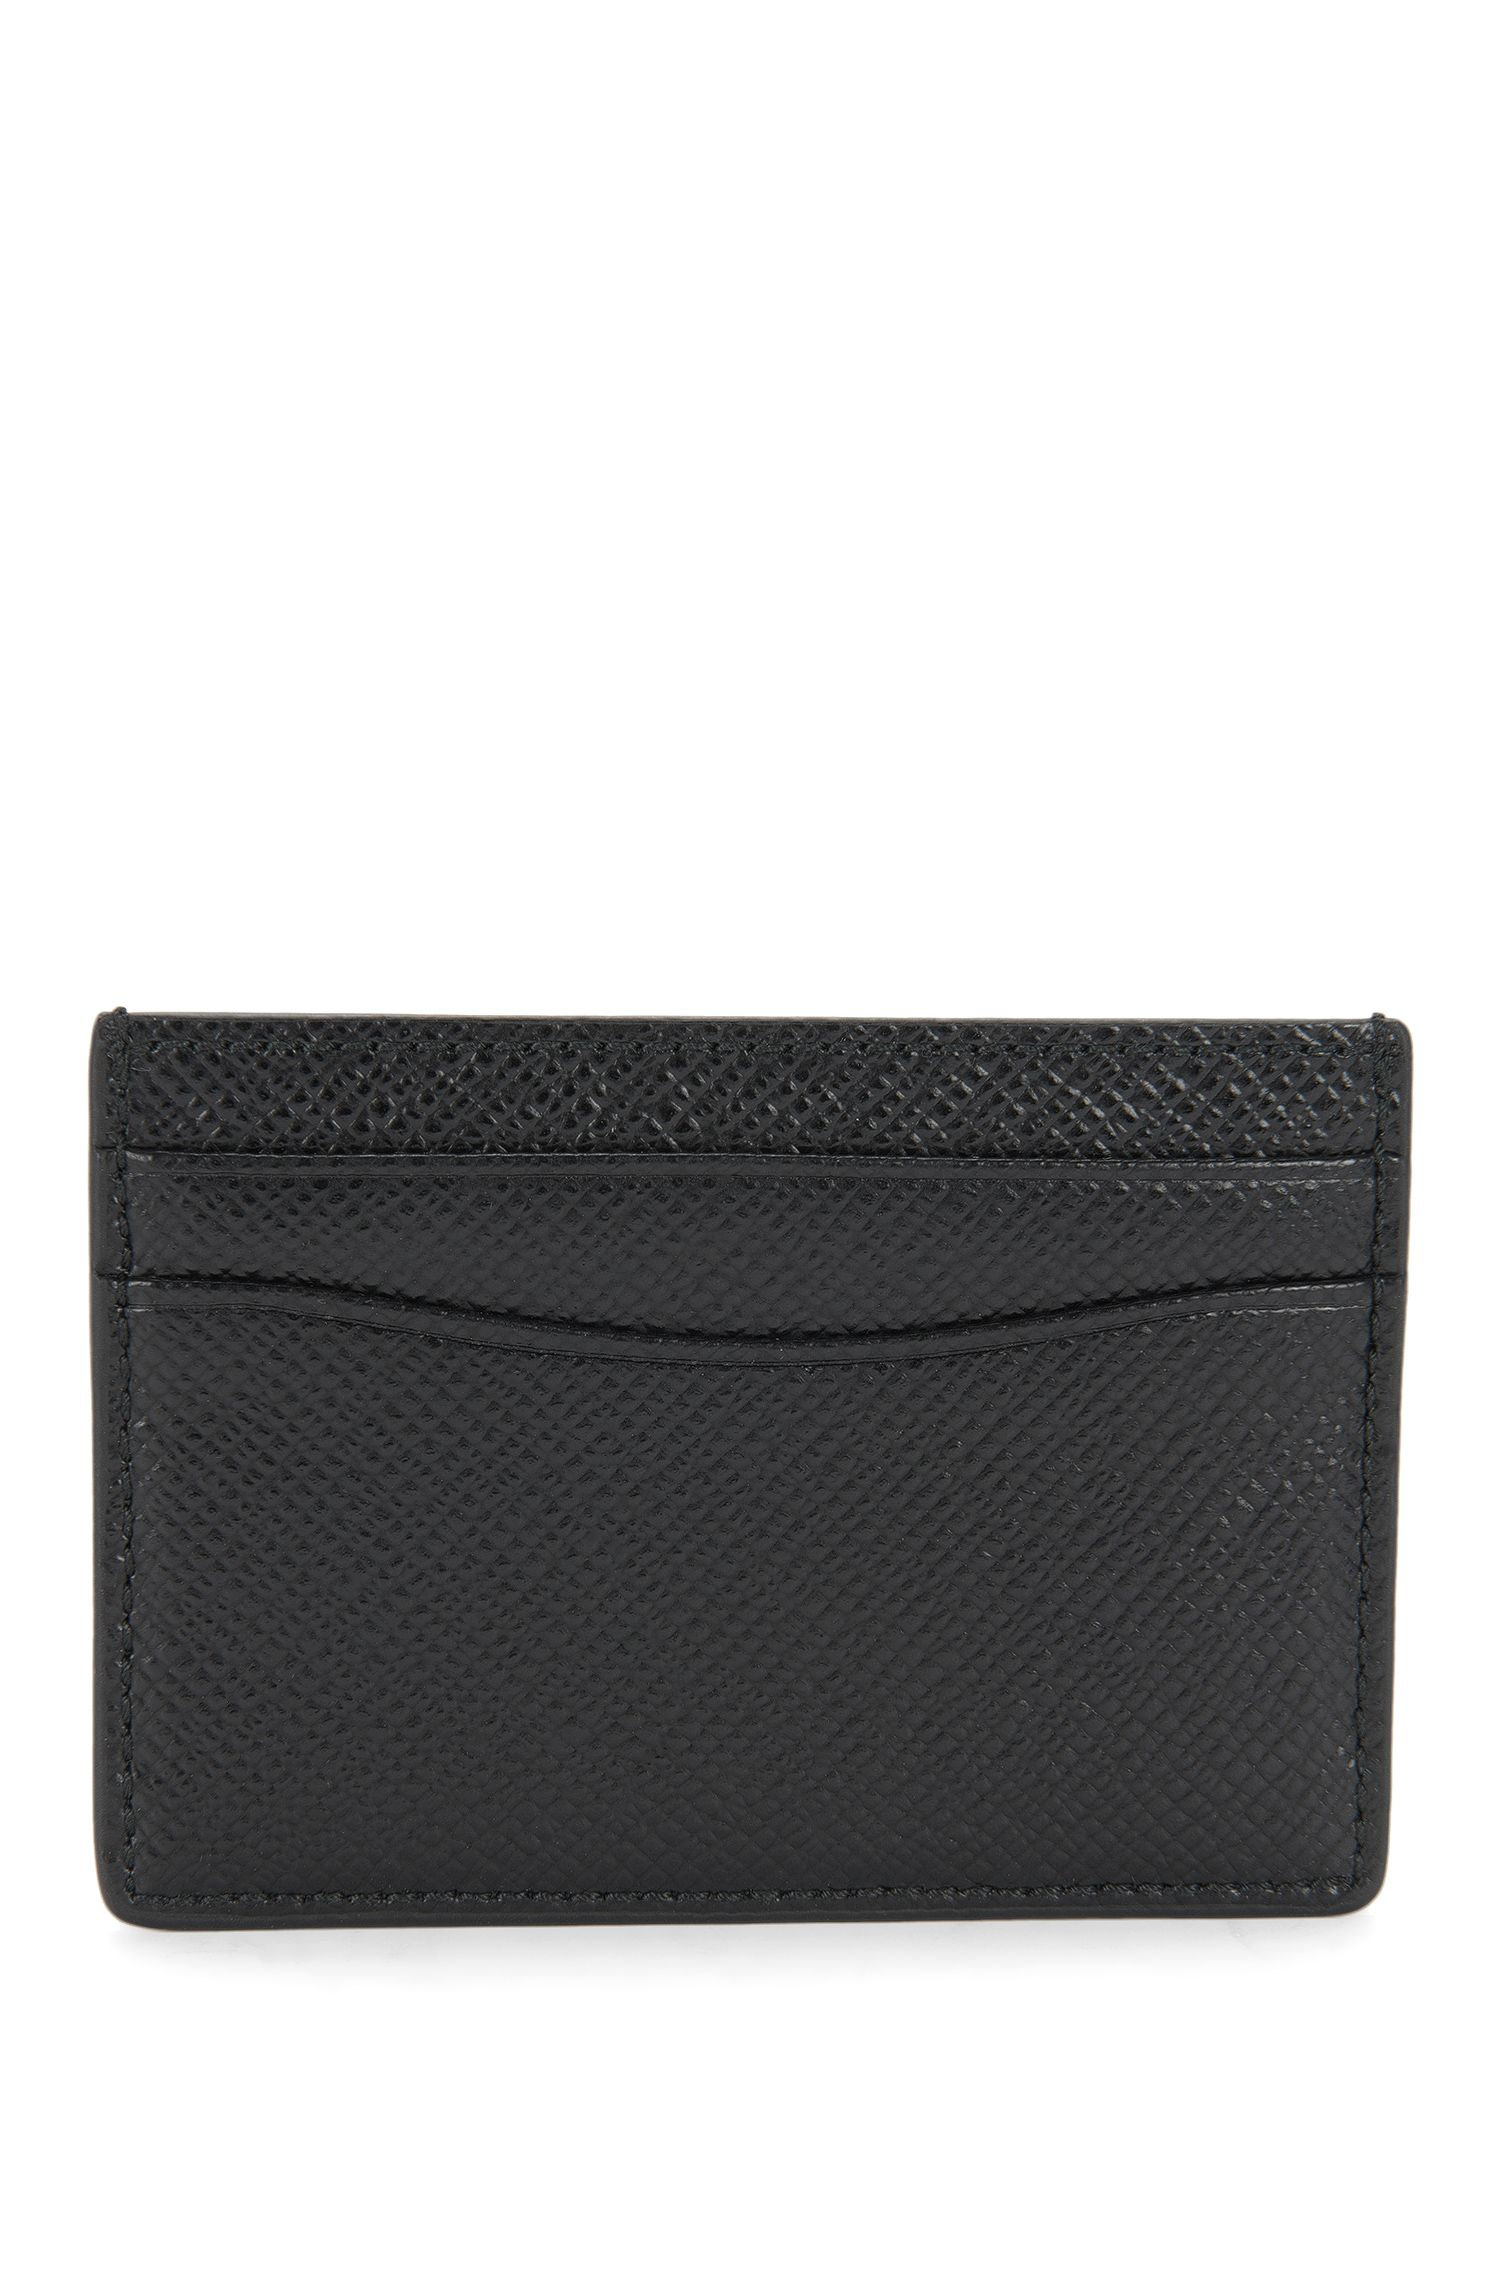 Signature Collection card holder in grained palmellato leather, Black